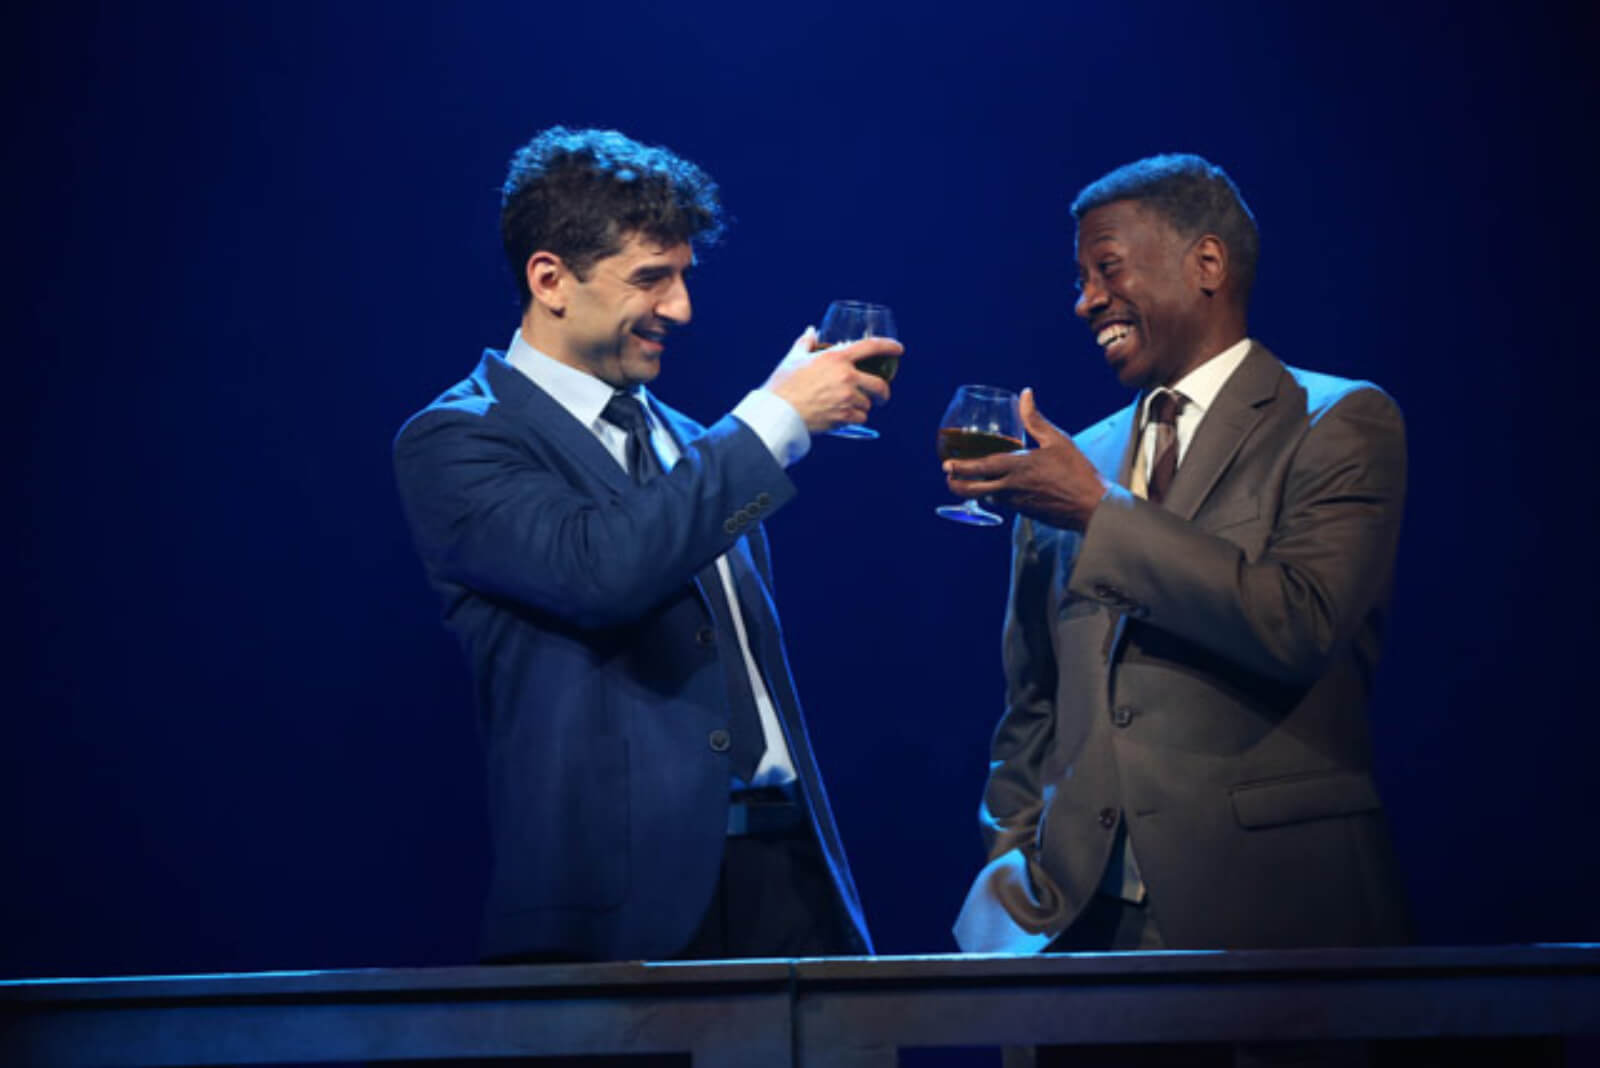 Two men, played by Tony Yazbeck and Teagle F. Bougere, clink glasses.